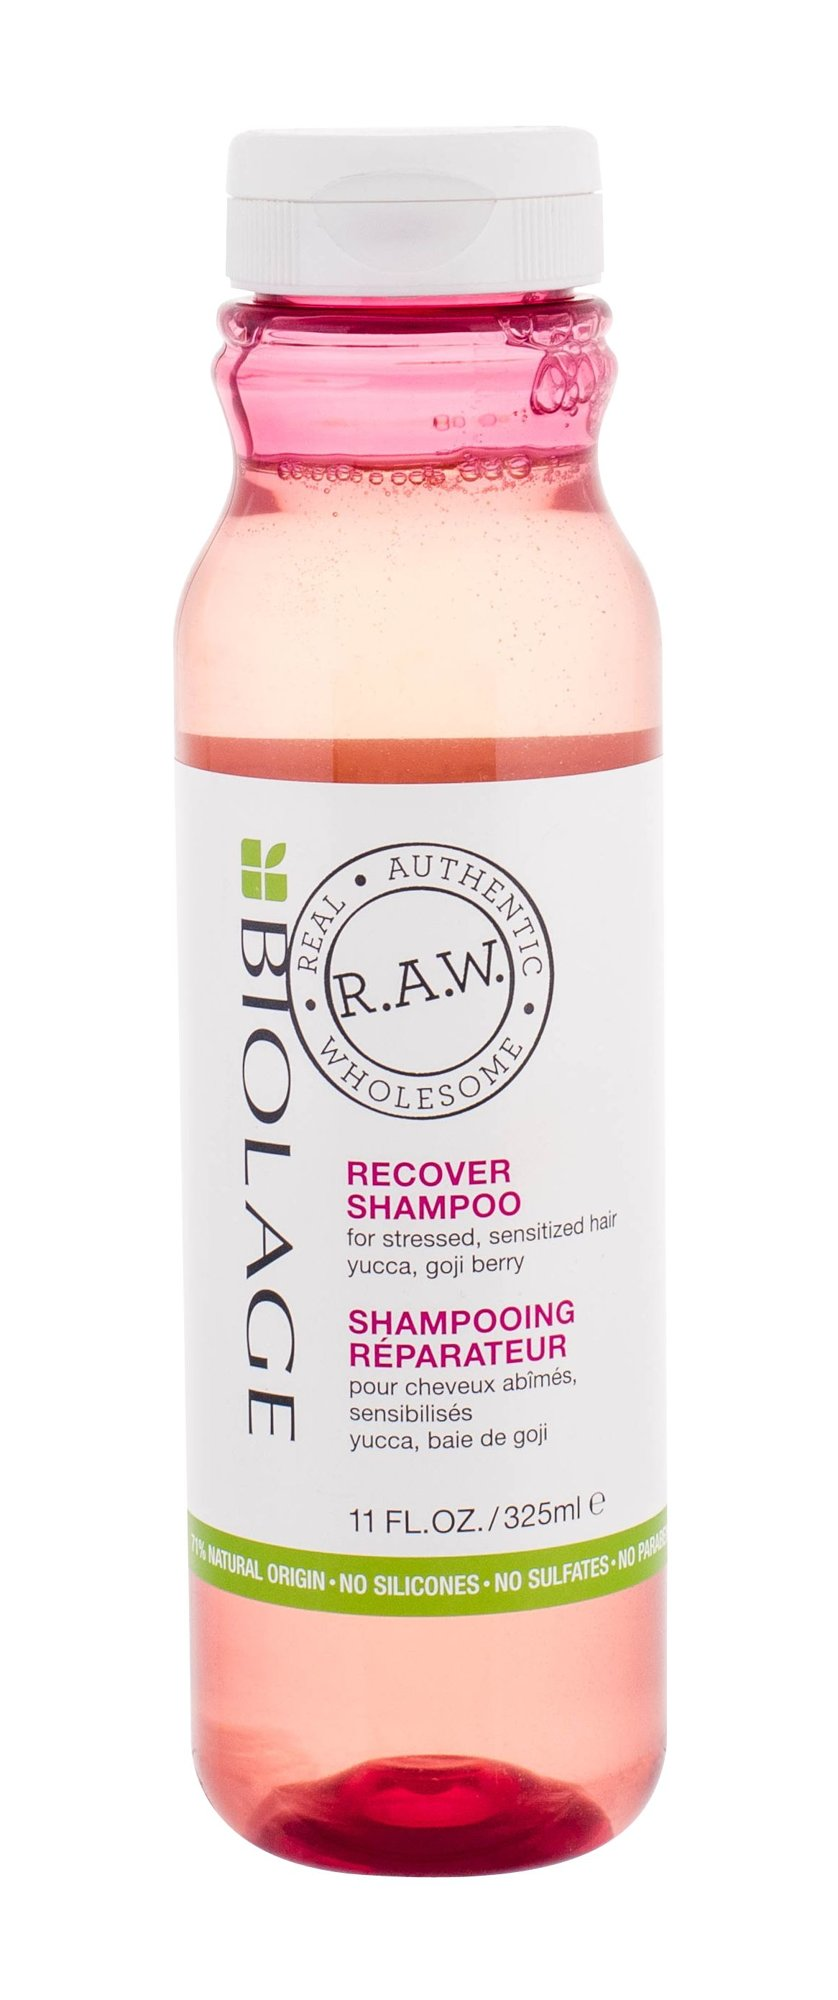 Matrix Biolage R.A.W. Shampoo 325ml